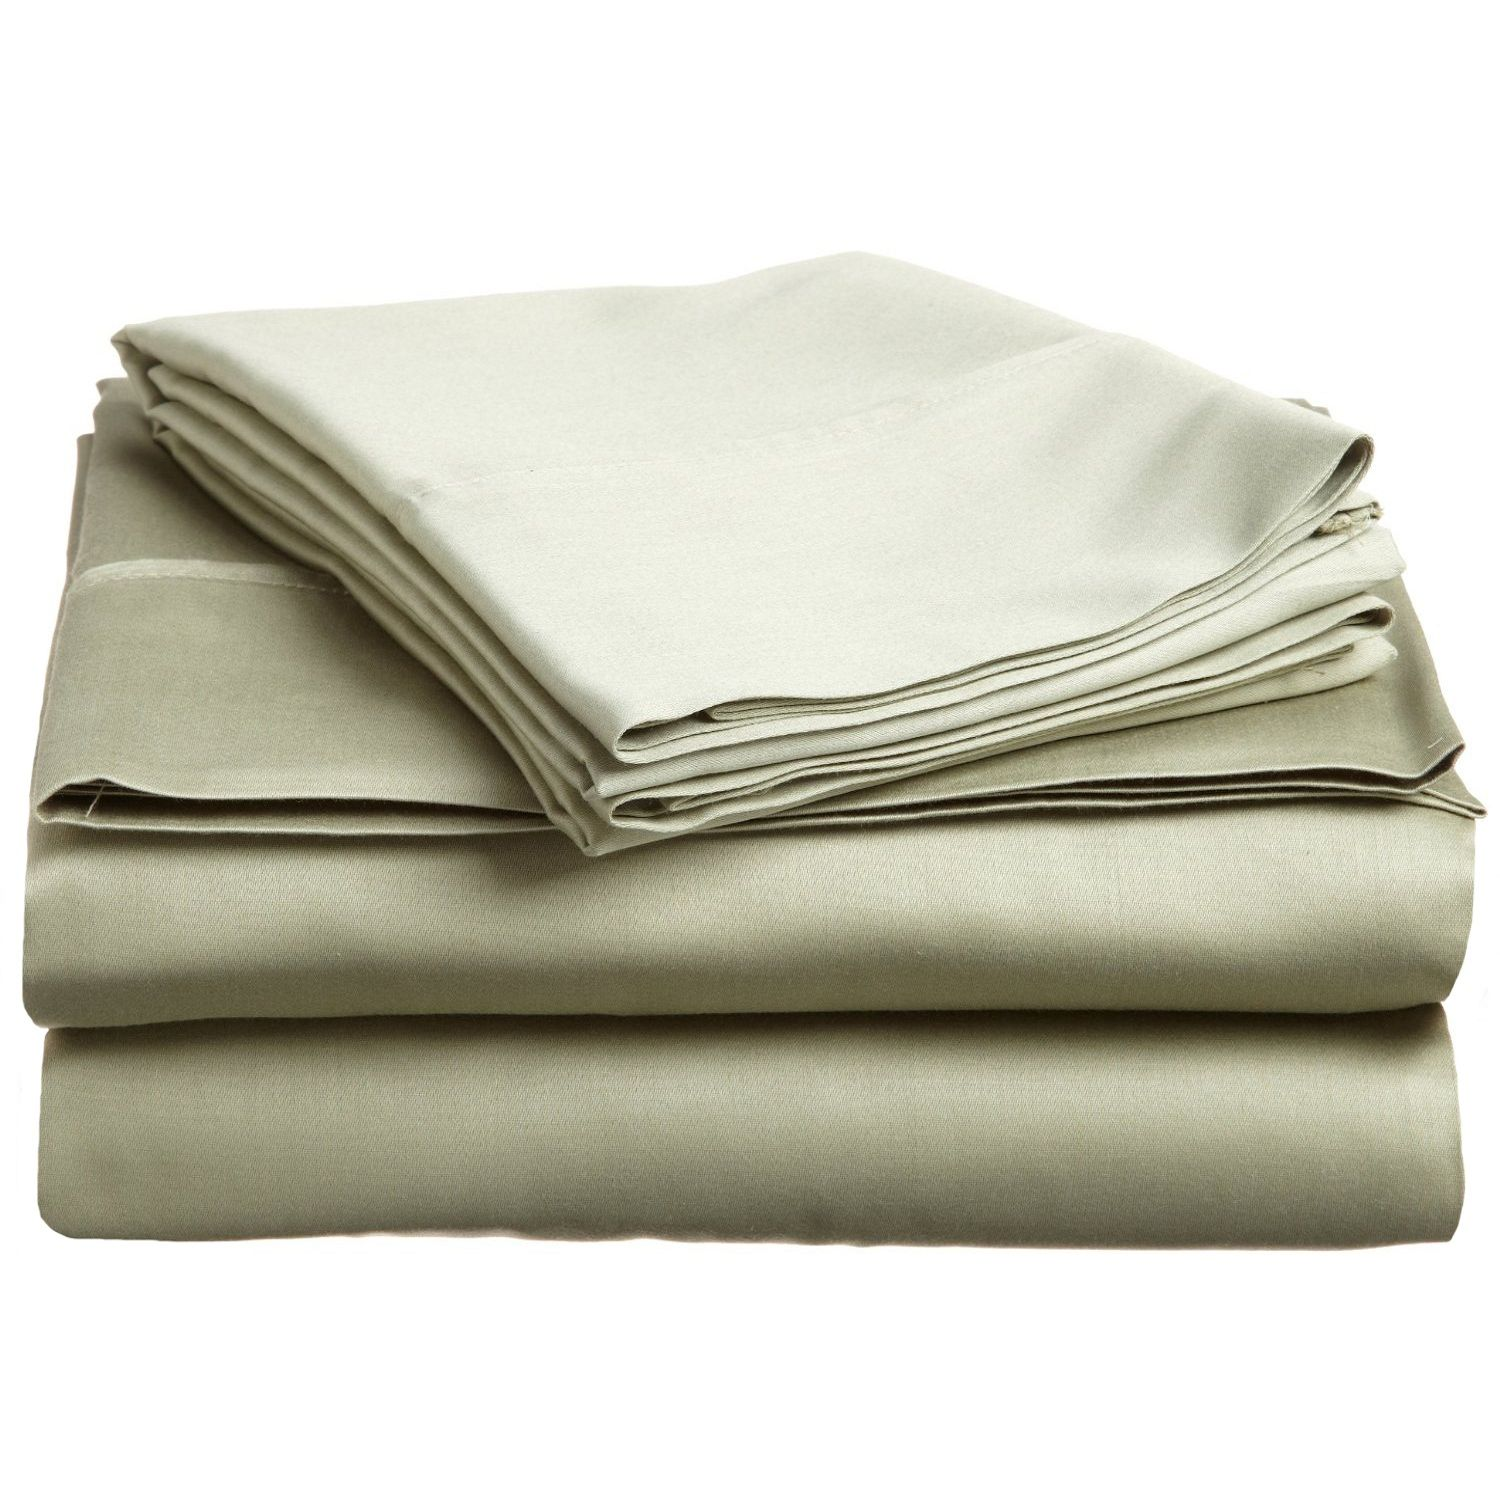 300 Thread Count Sheet Set Premium Long Staple Cotton